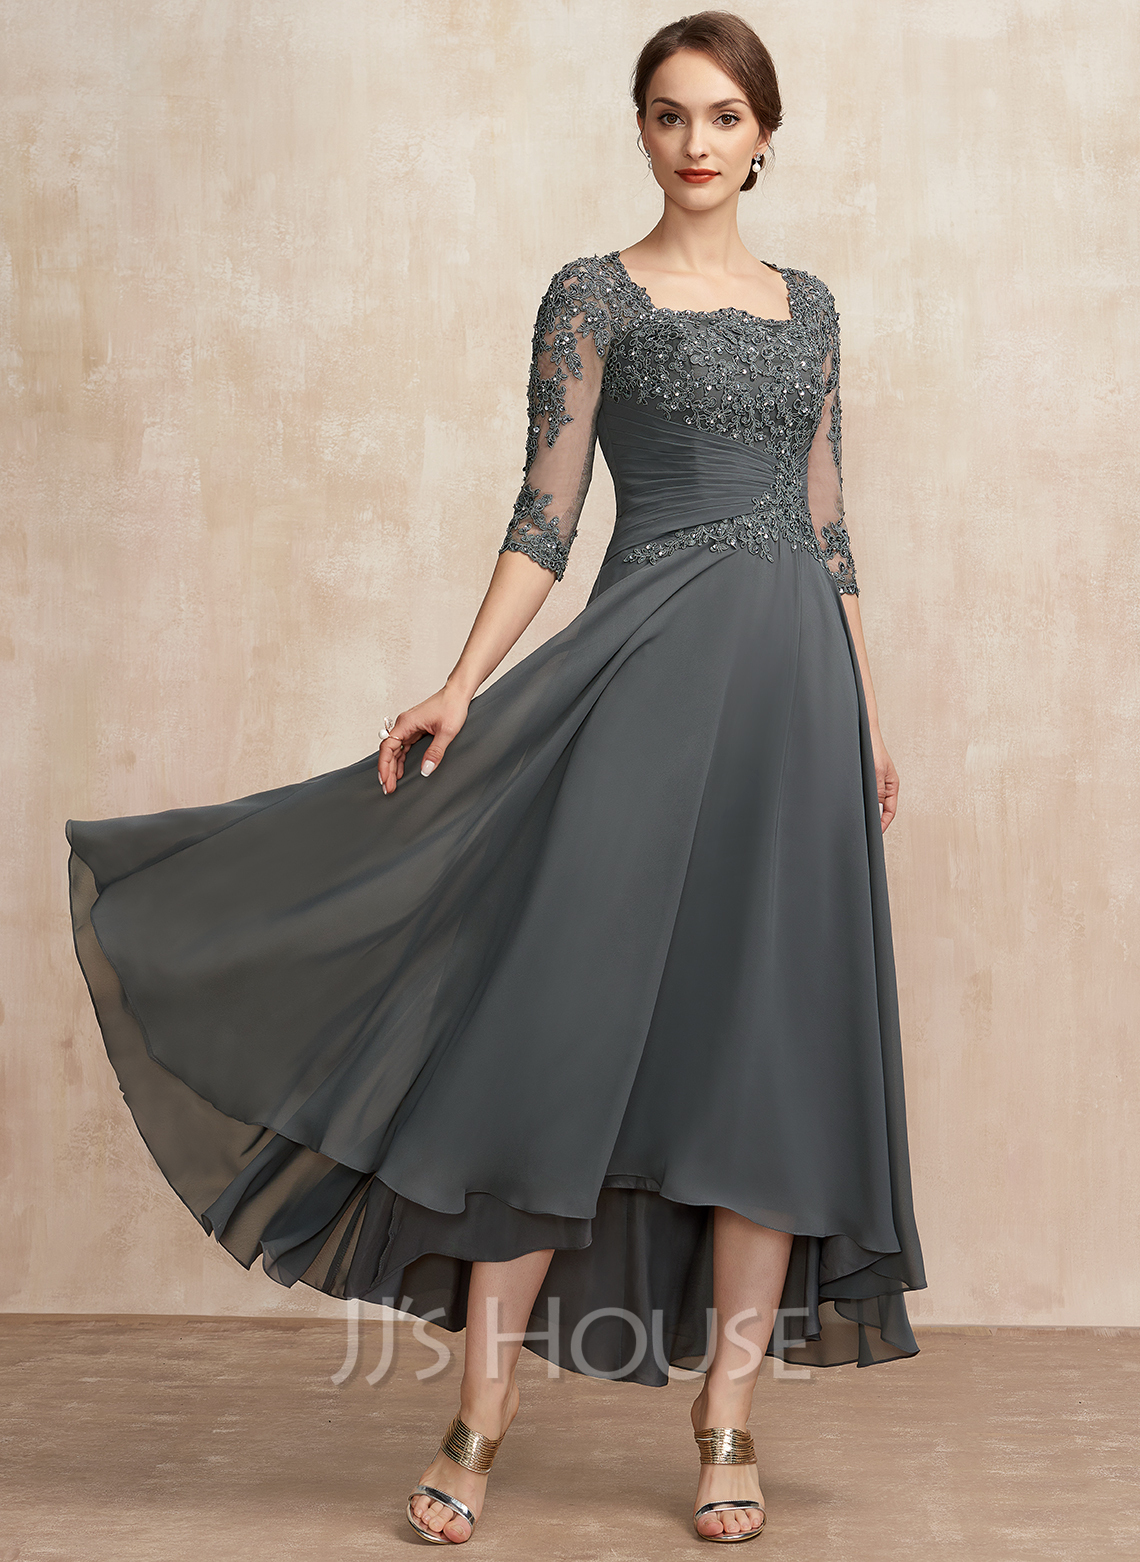 A-Line Square Neckline Asymmetrical Chiffon Lace Mother of the Bride Dress With Ruffle Sequins